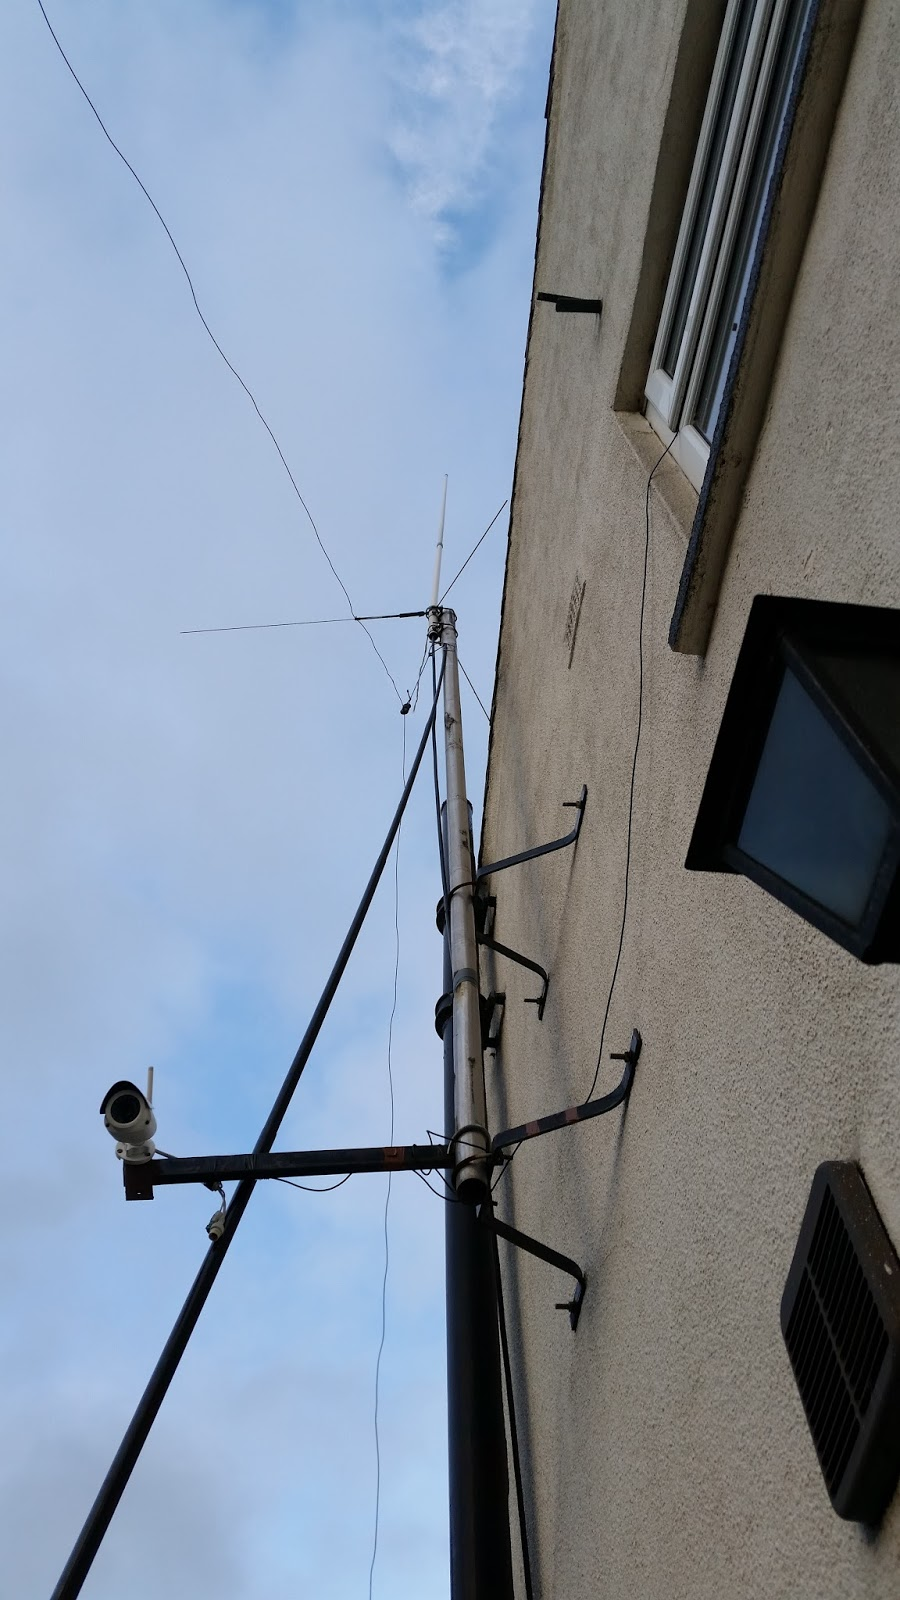 How to Hook Up TV to RV Antenna Tiny Spaces Living